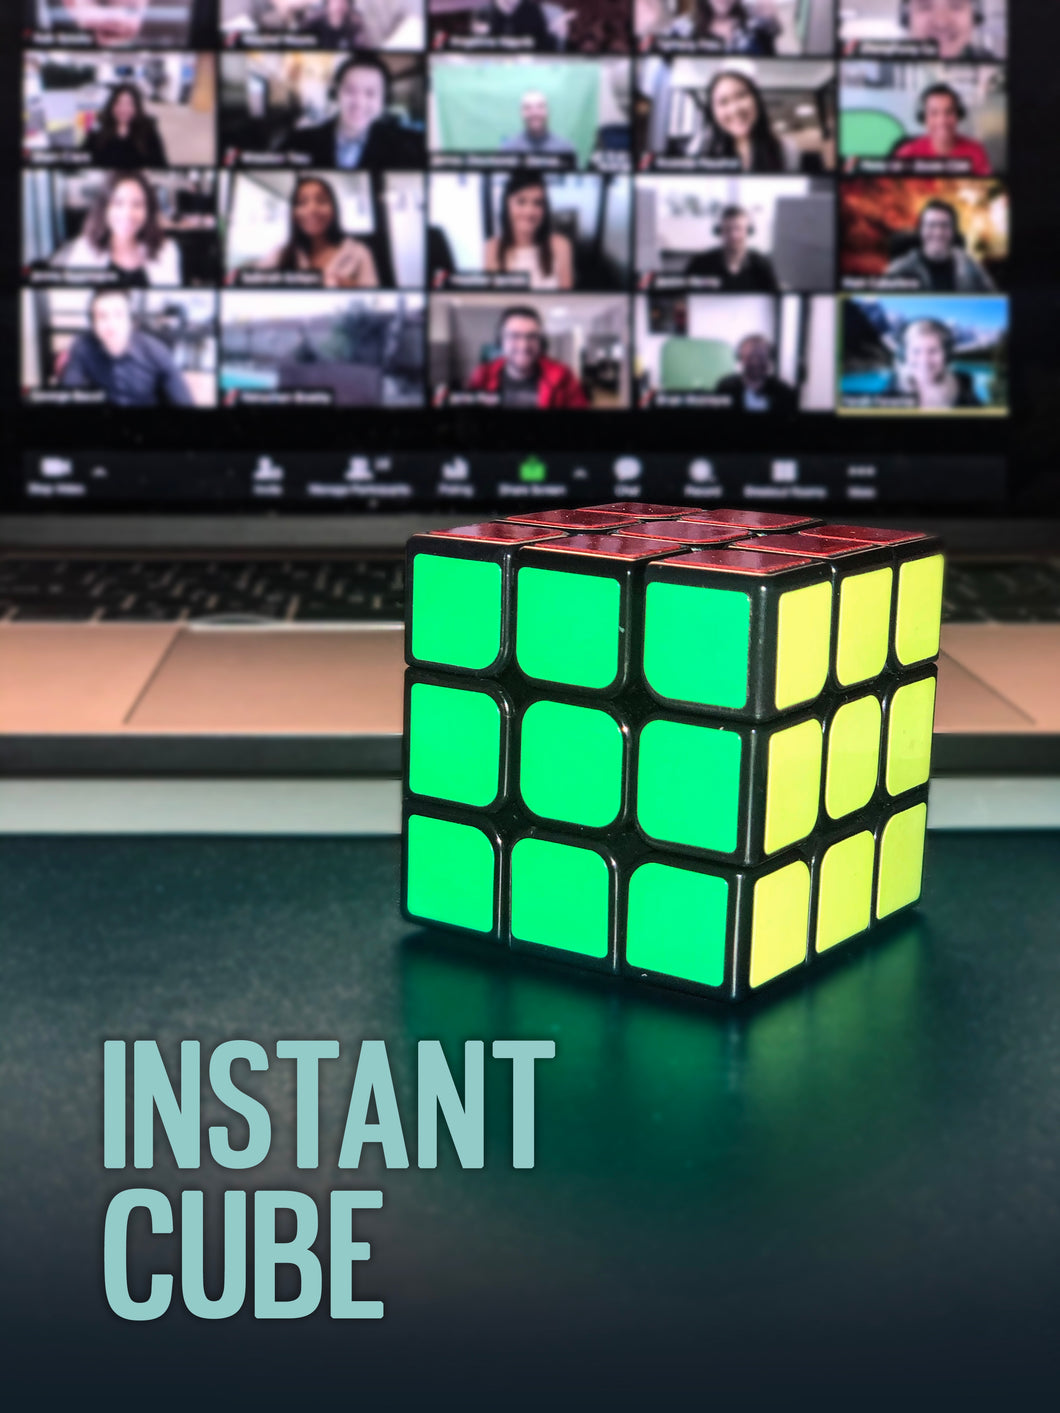 Instant Cube